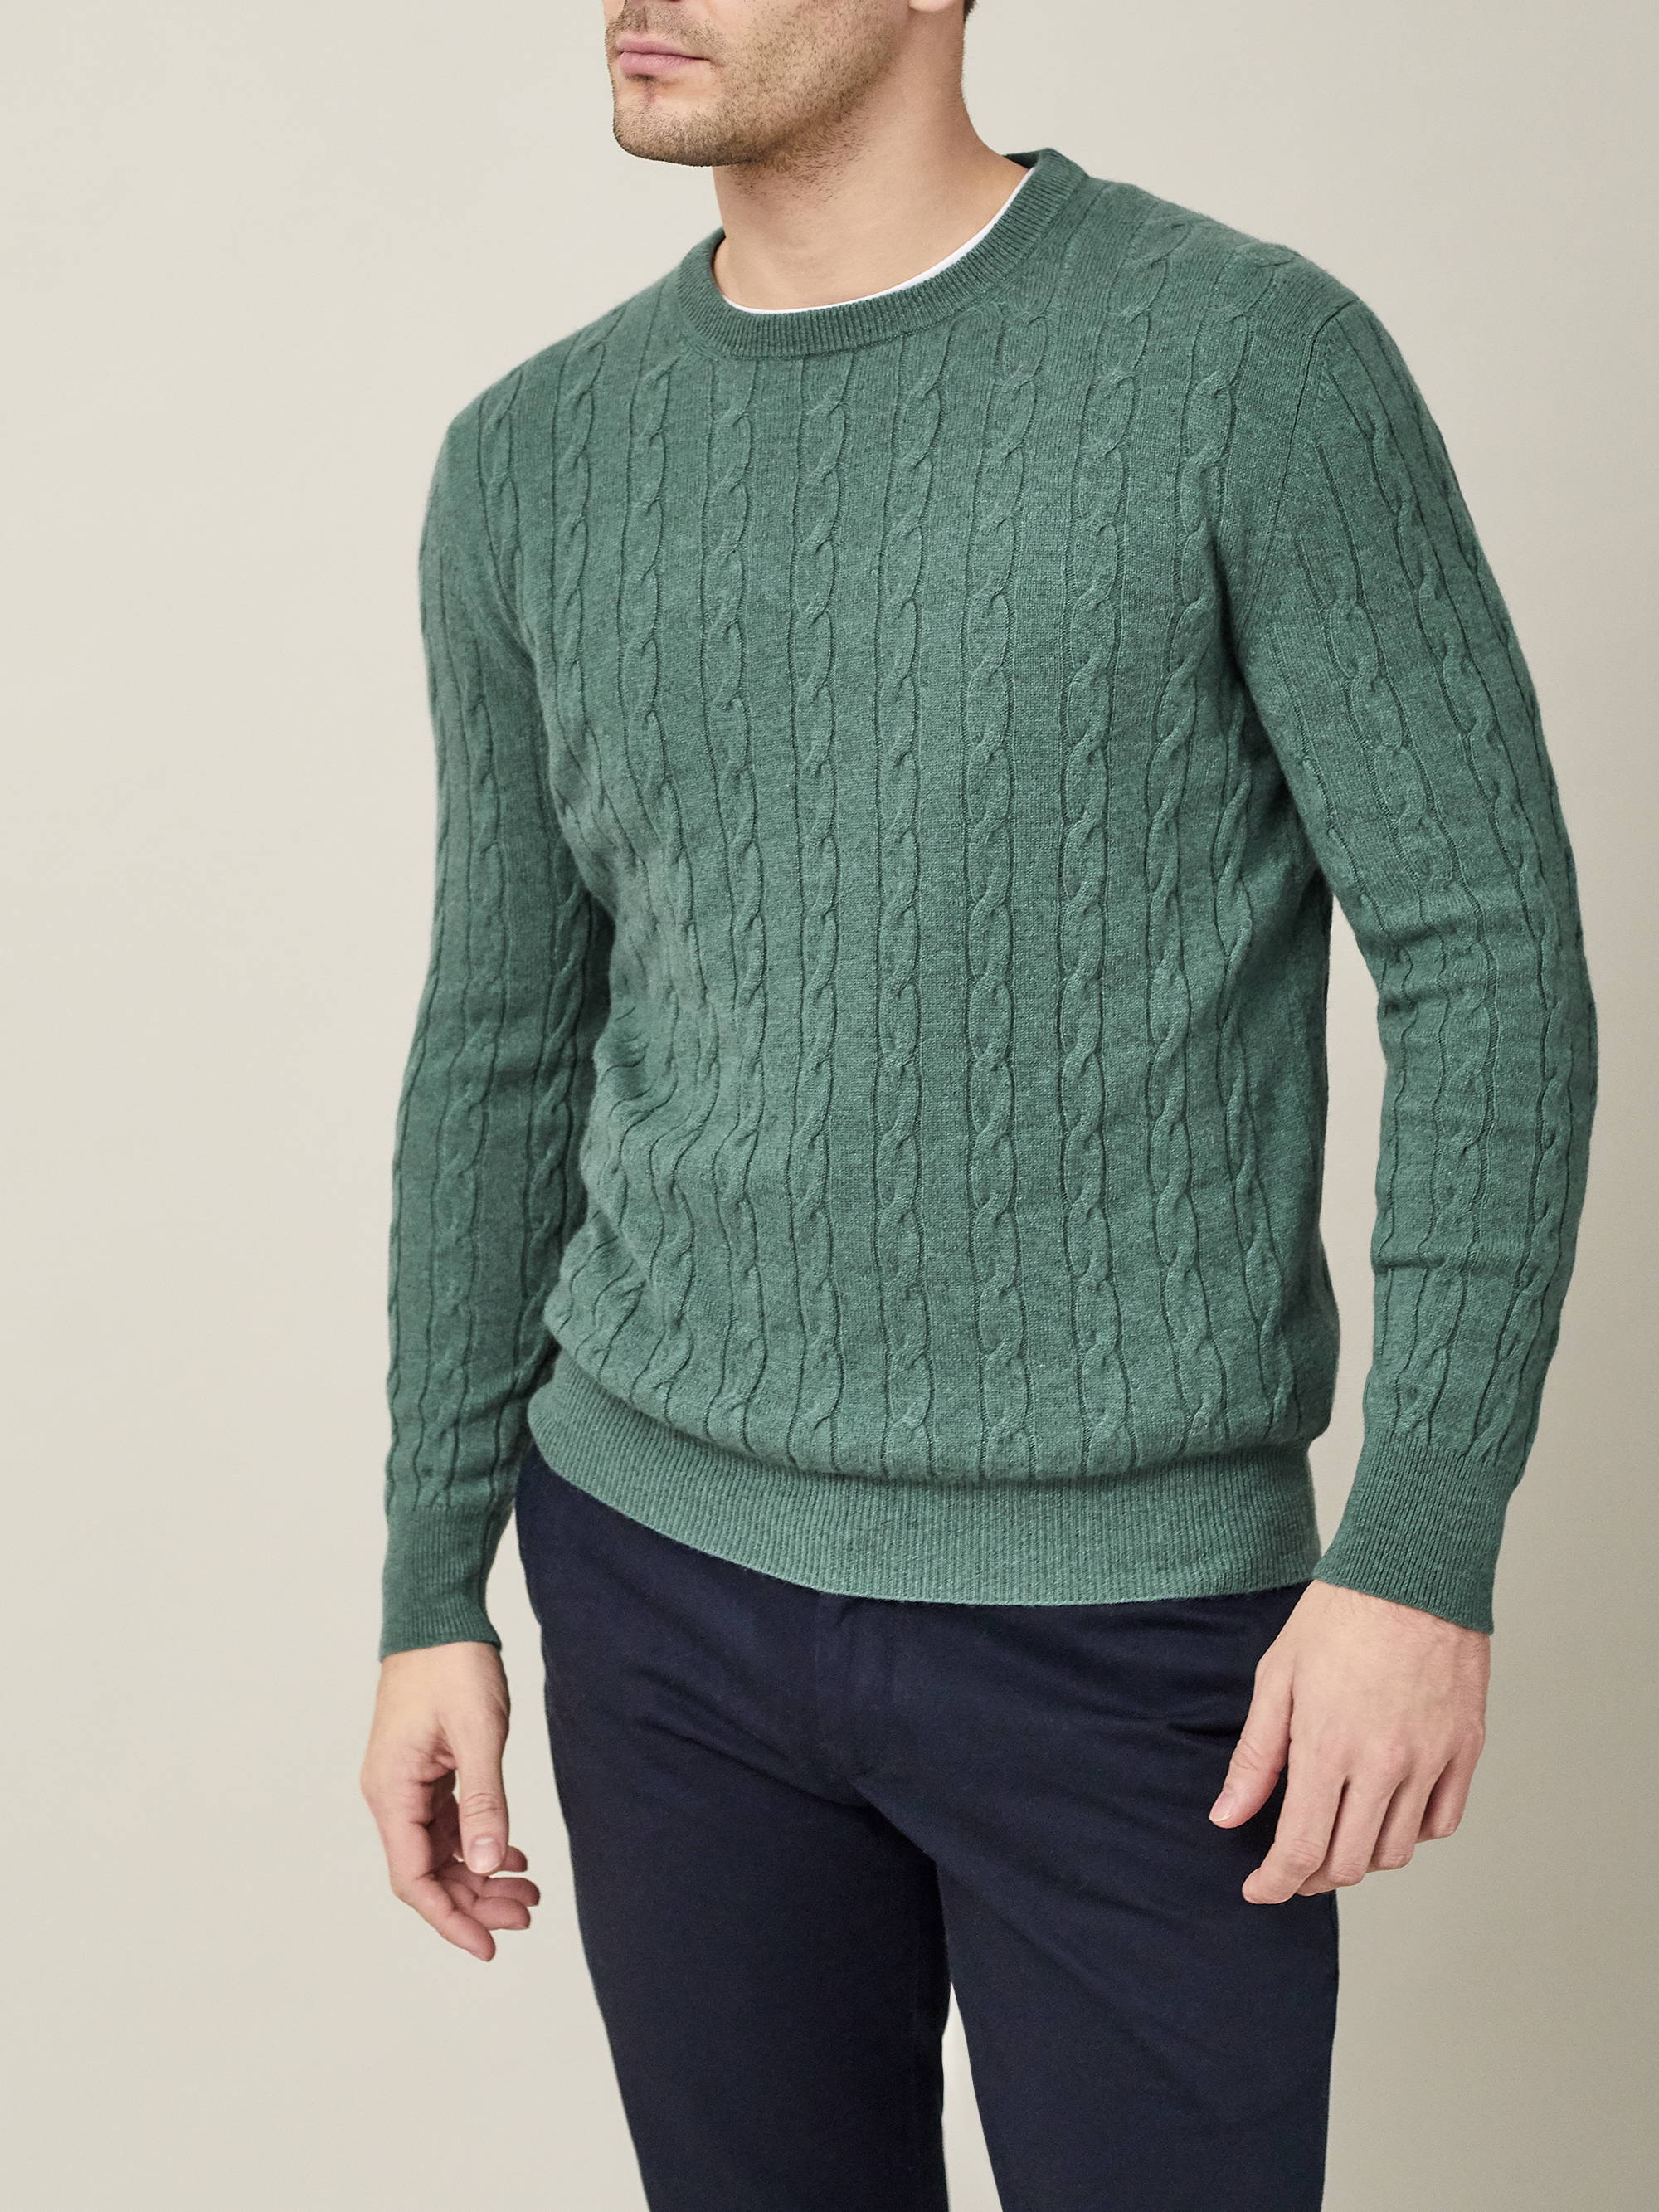 Green Cashmere Cable Knit